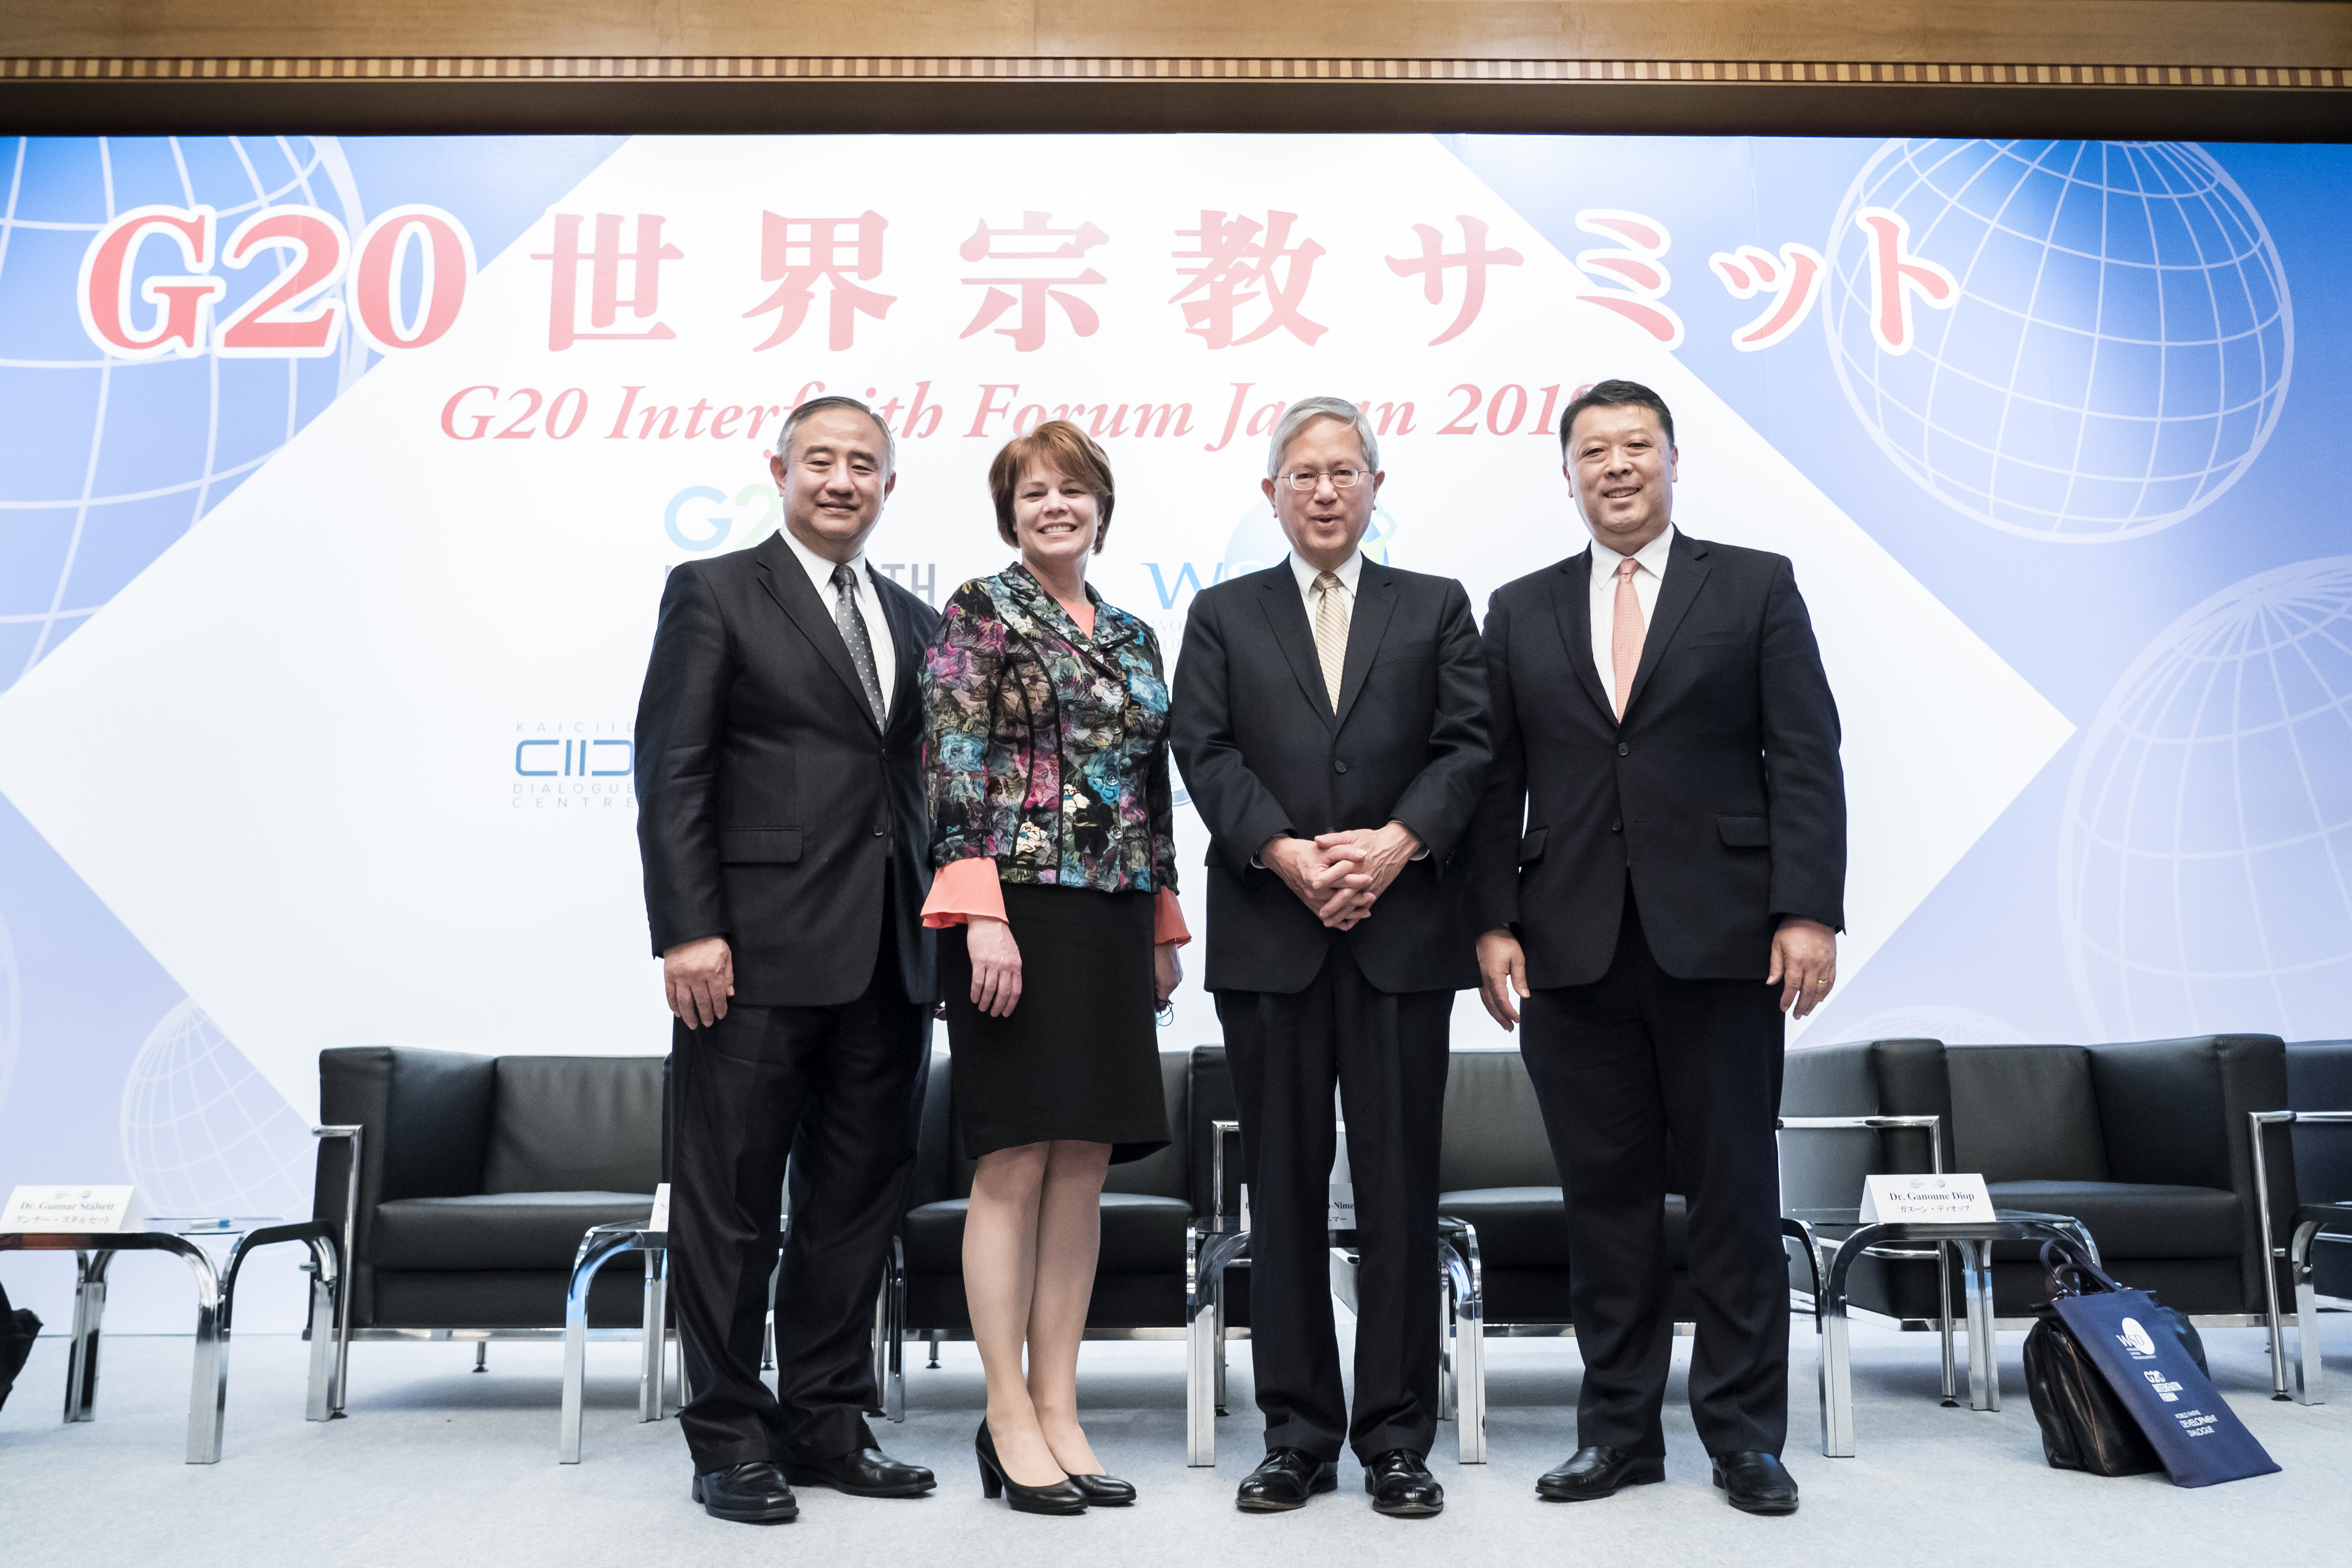 Elder Gerrit W. Gong of the Quorum of the Twelve Apostles of The Church of Jesus Christ of Latter-day Saints, center right, poses for a photograph during the G20 Interfaith Forum in Chiba, Japan, on Saturday, June 8, 2019.